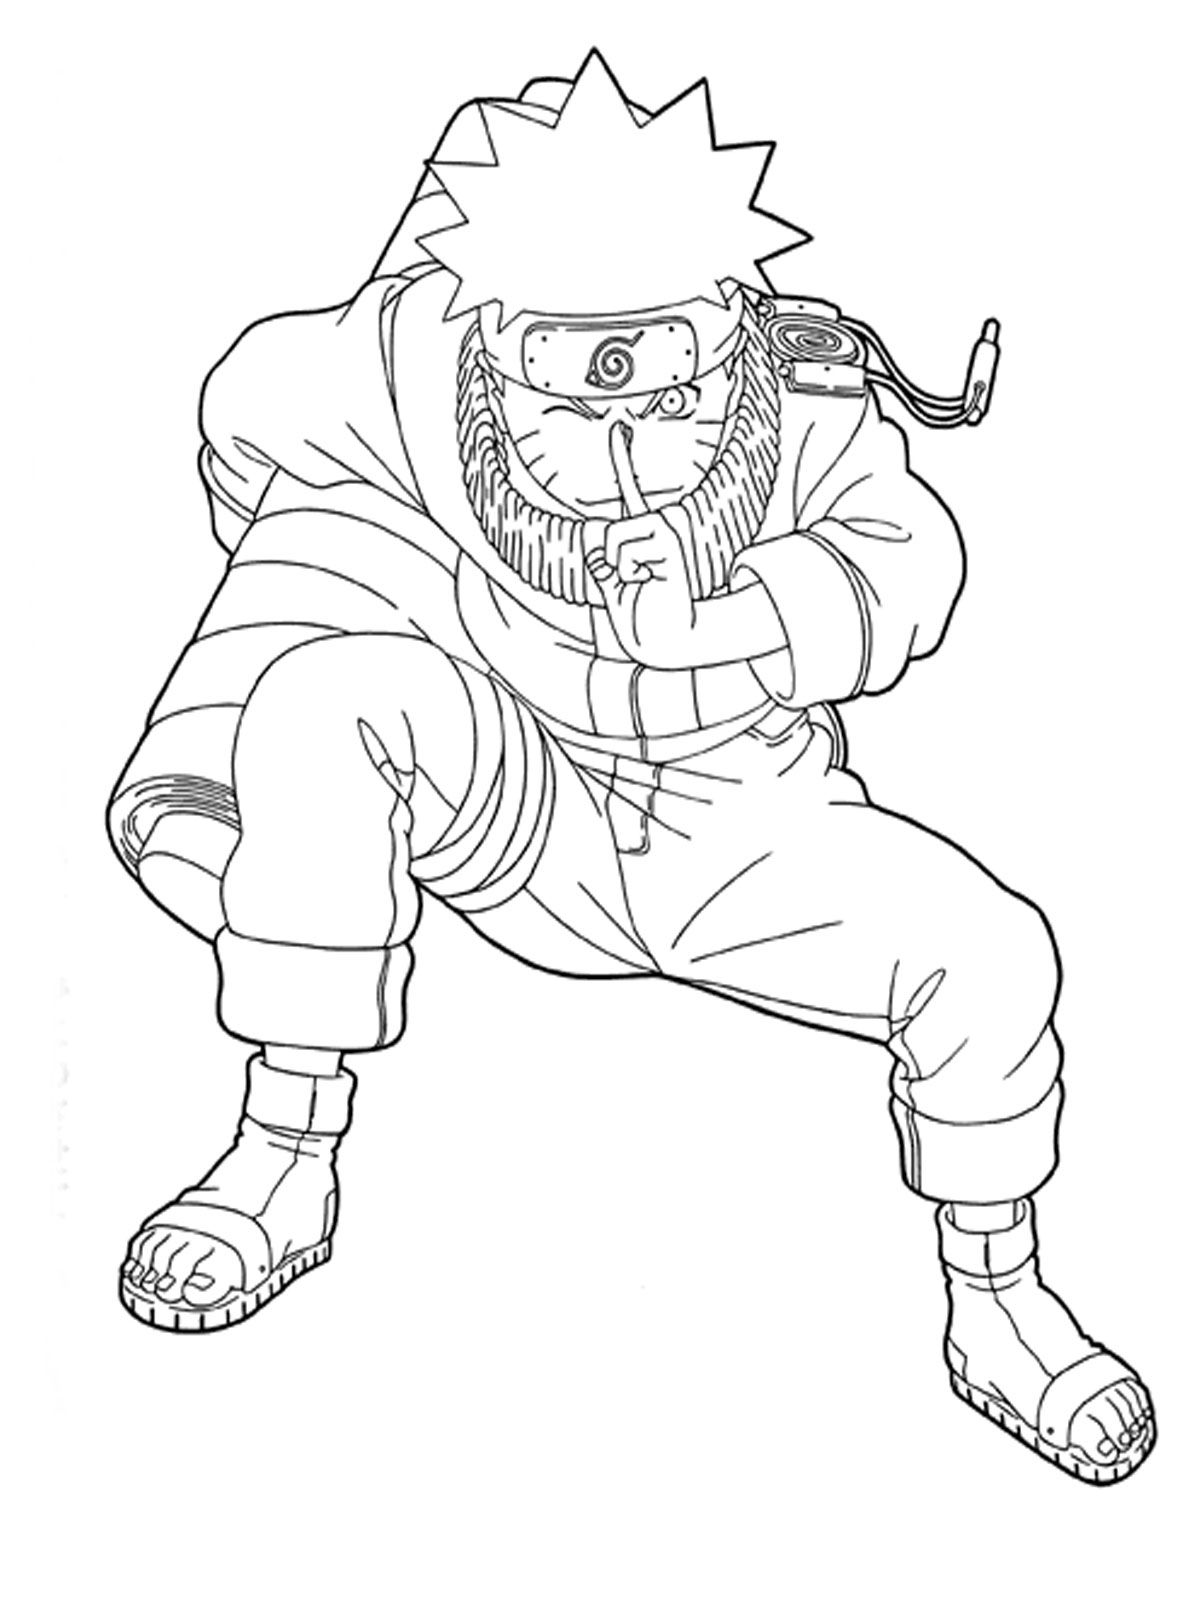 Adult Cute Naruto Color Pages Images beauty printable naruto shippuden coloring pages az realistic images